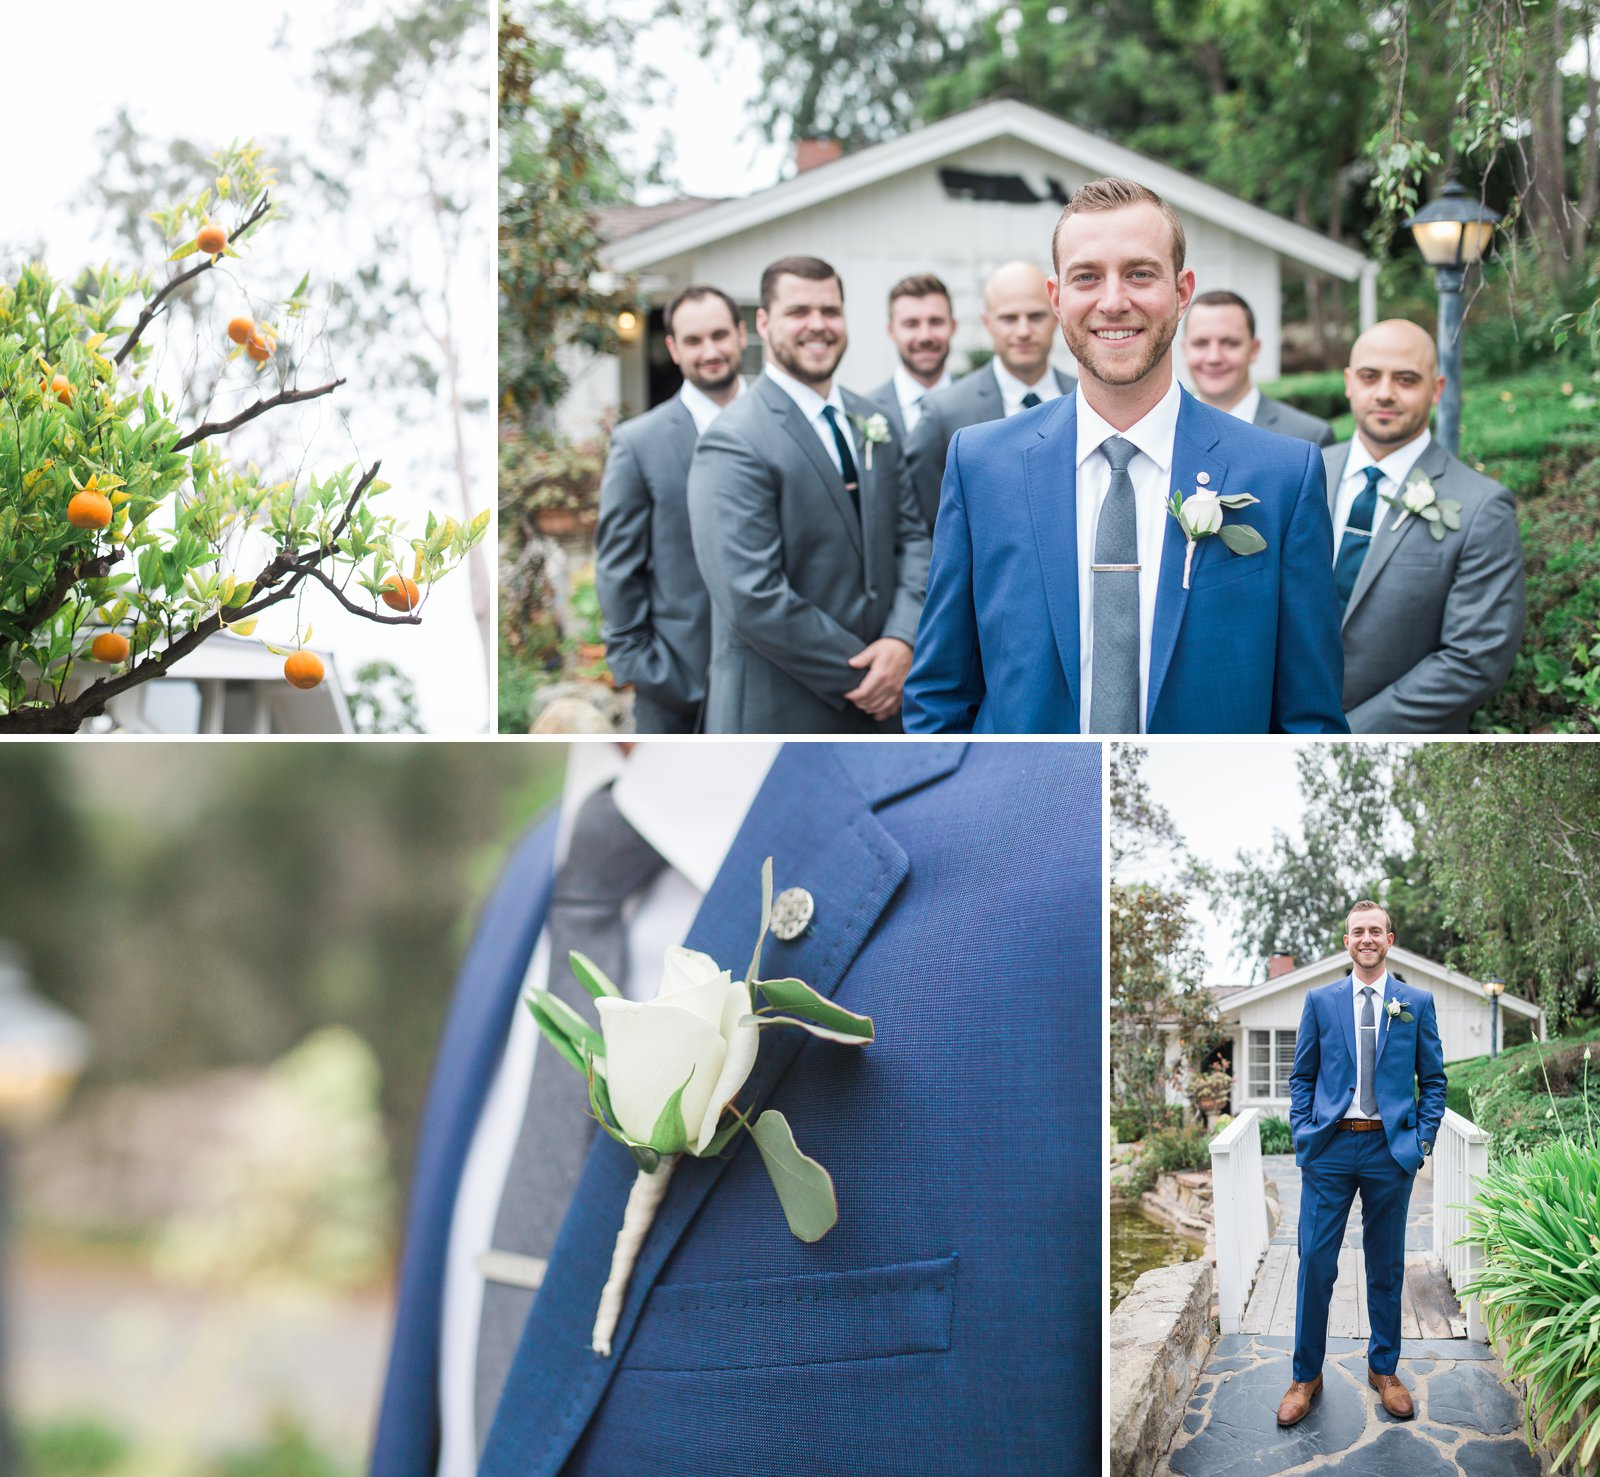 Groomsmen and groom getting ready for the ceremony